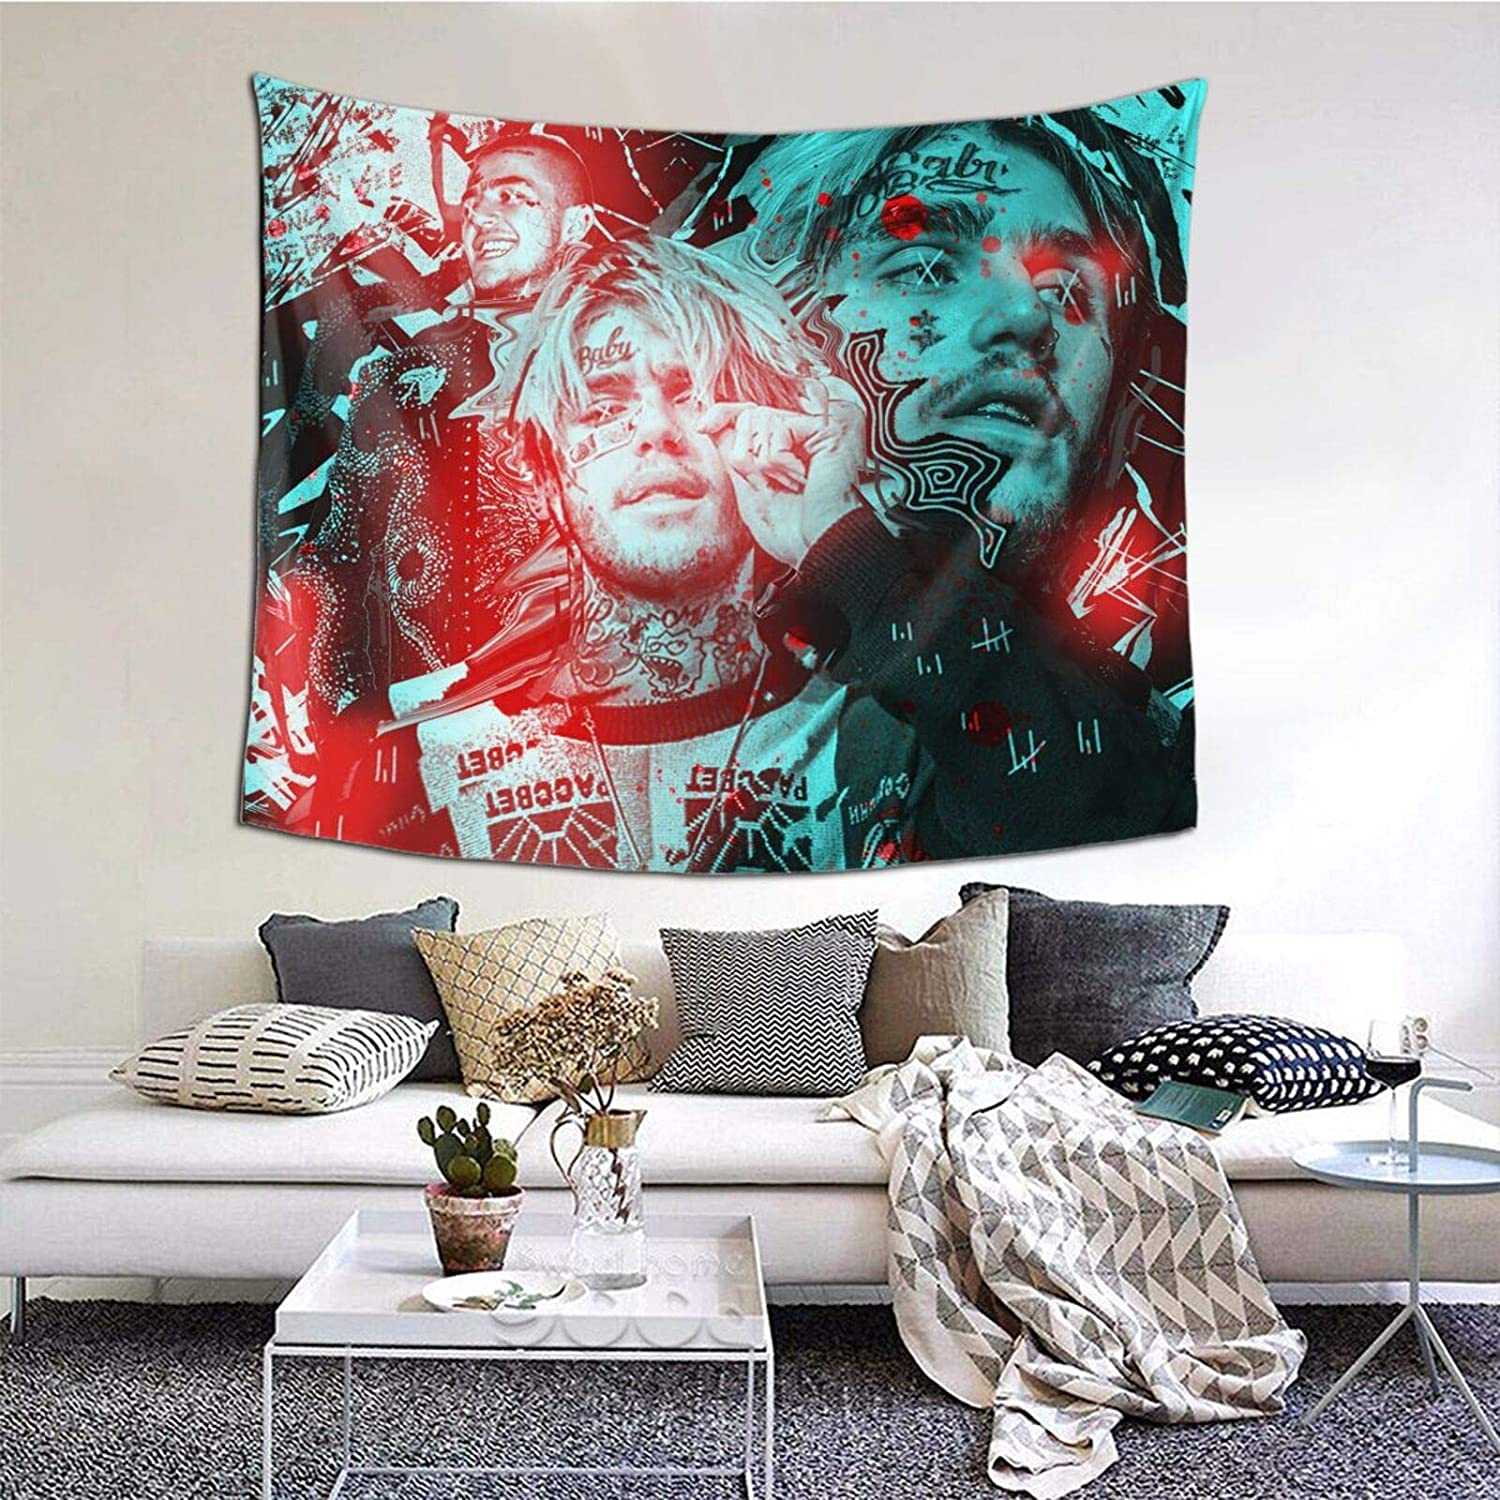 Lil_Peep Love Rapper Tapestry Wall Hanging For Living Room Bedroom Dorm Room Home Decor 60x51in A